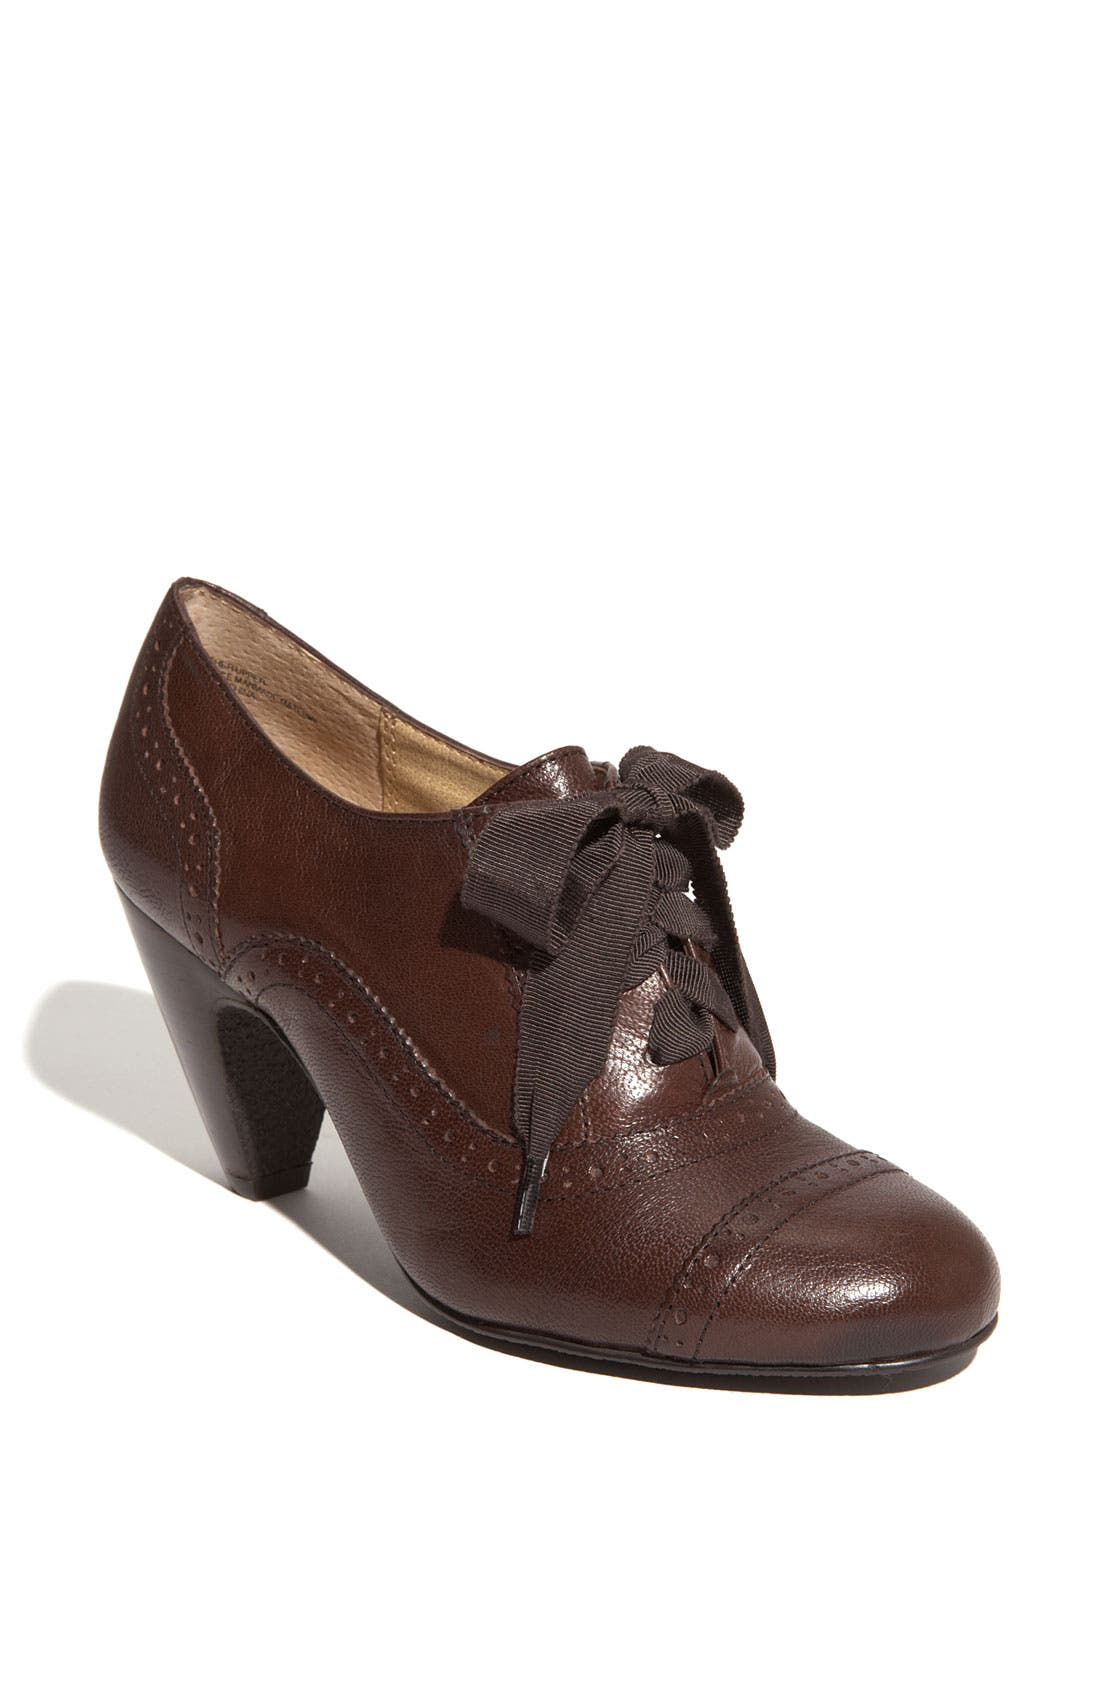 Main Image - BP. 'Hightower Oxford' Pump